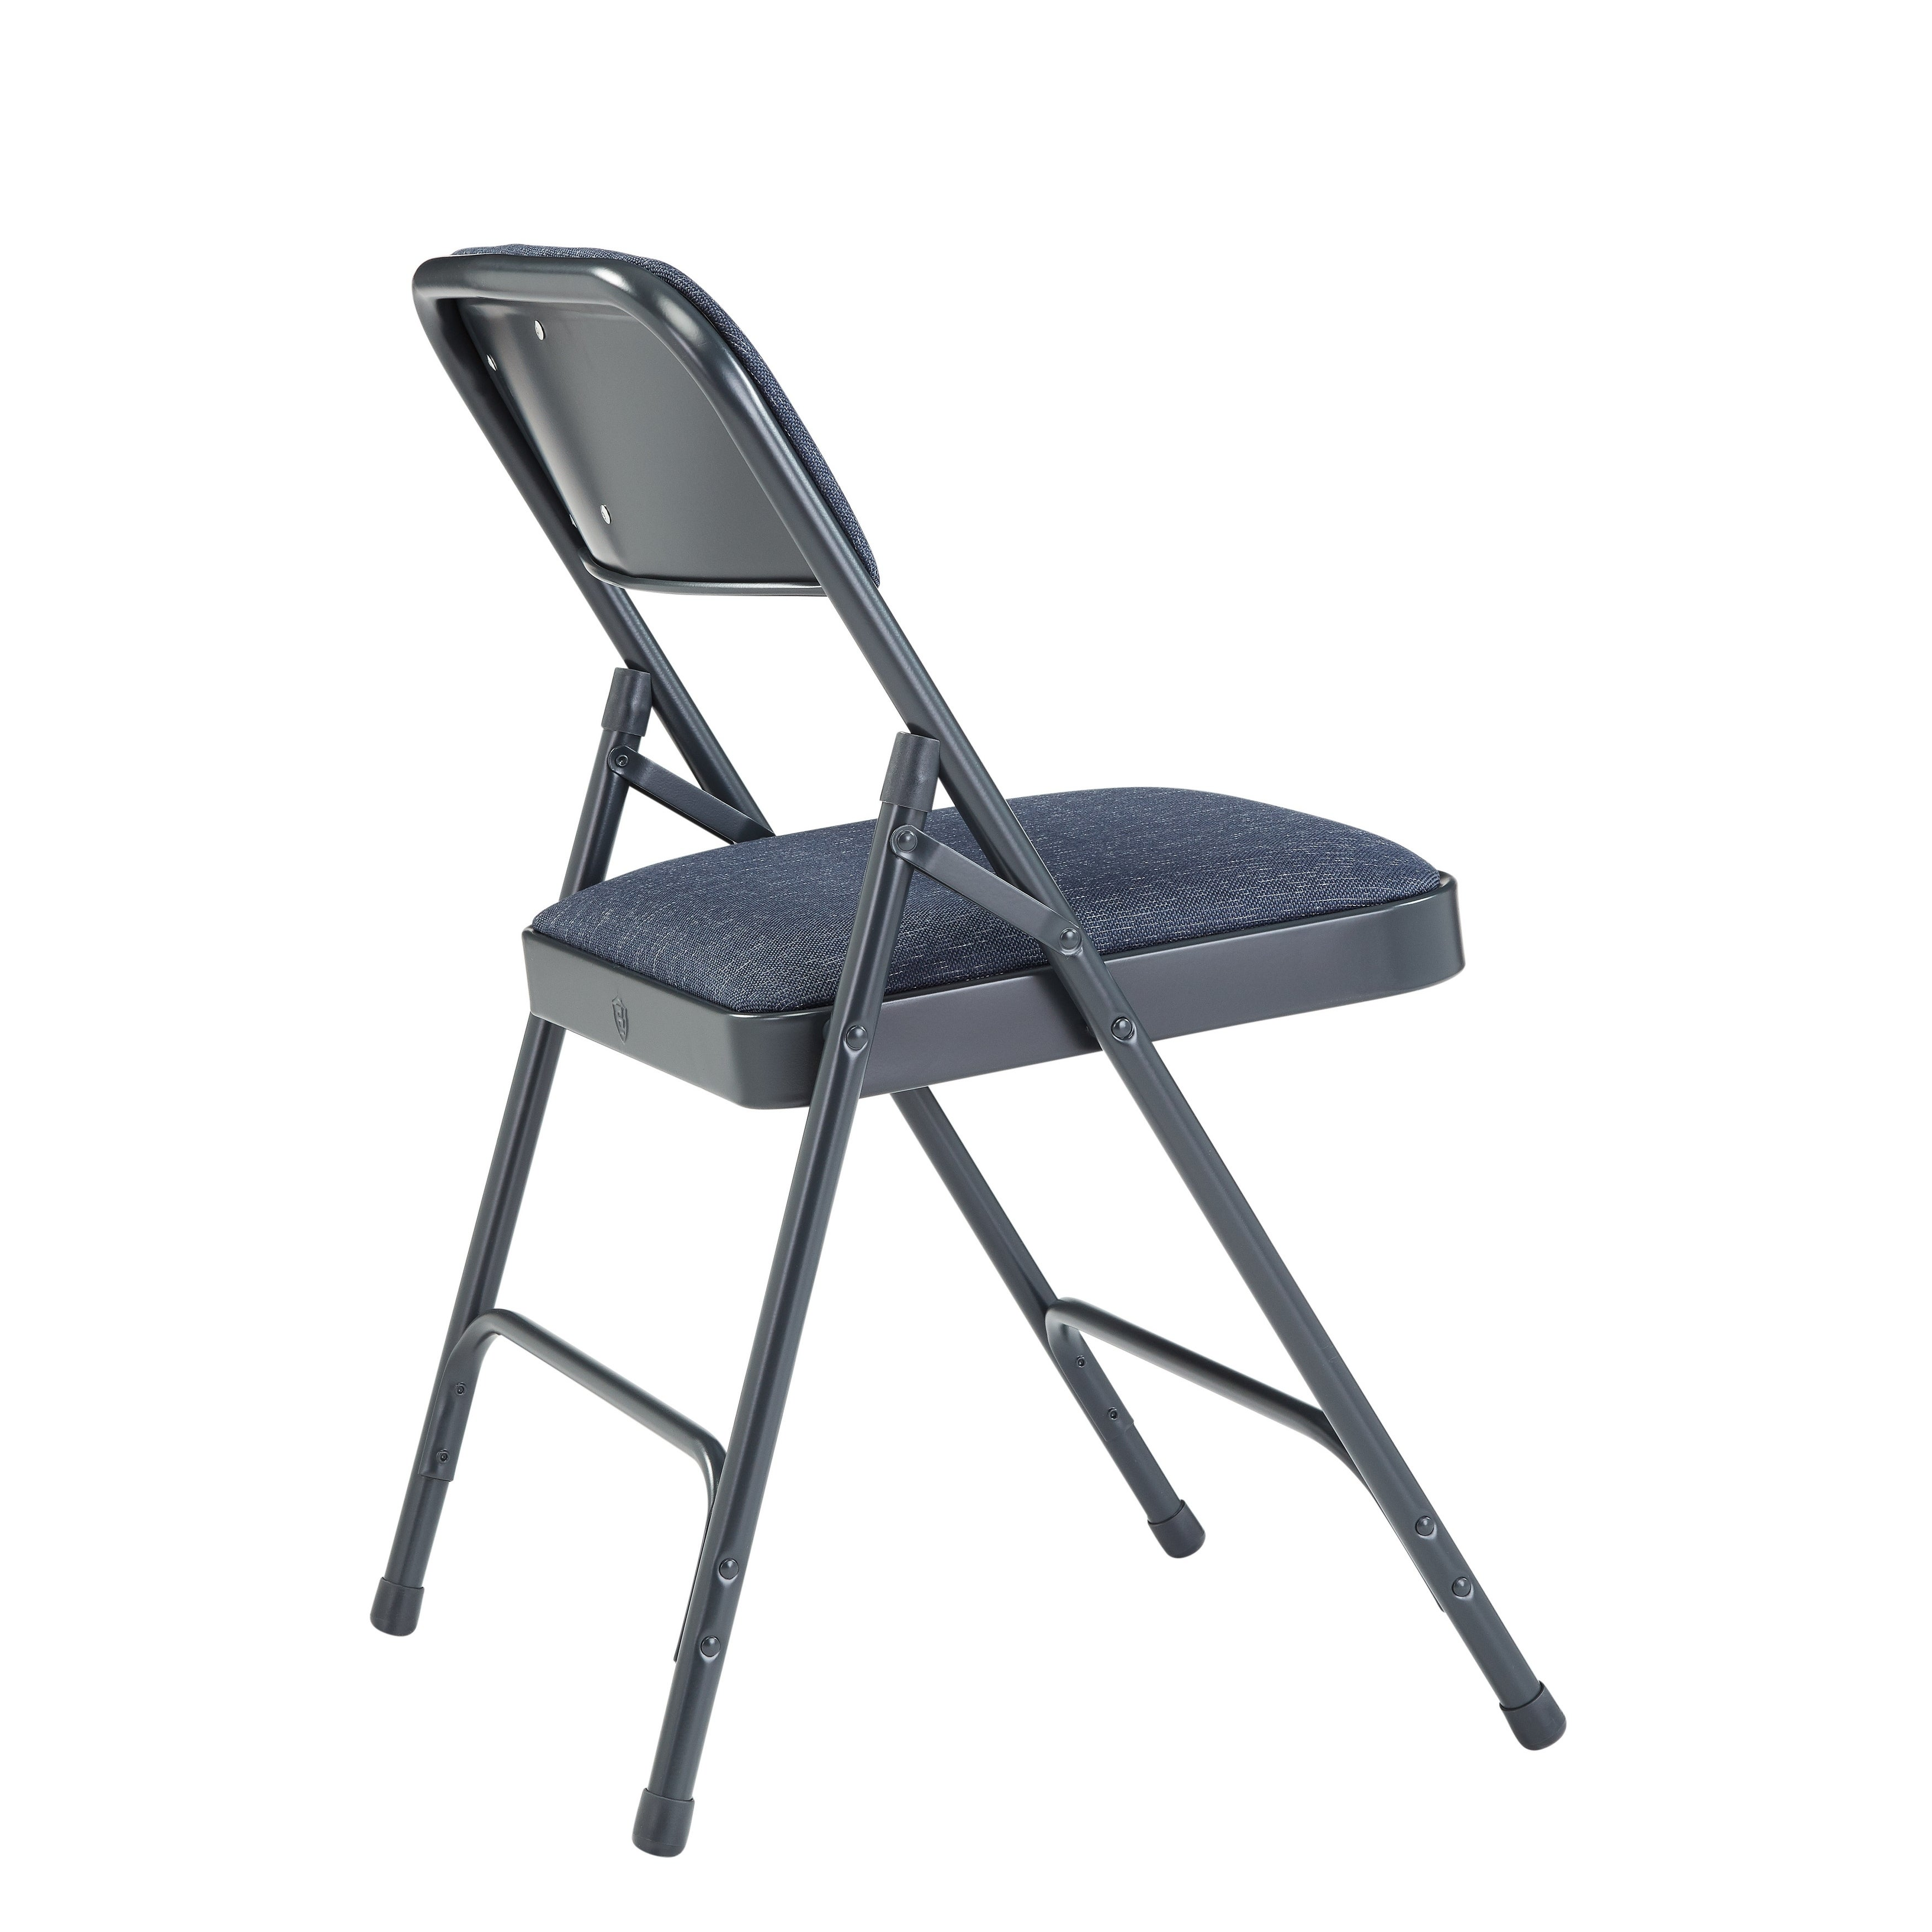 Nps Fabric Upholstered Premium Folding Chairs Pack Of 4